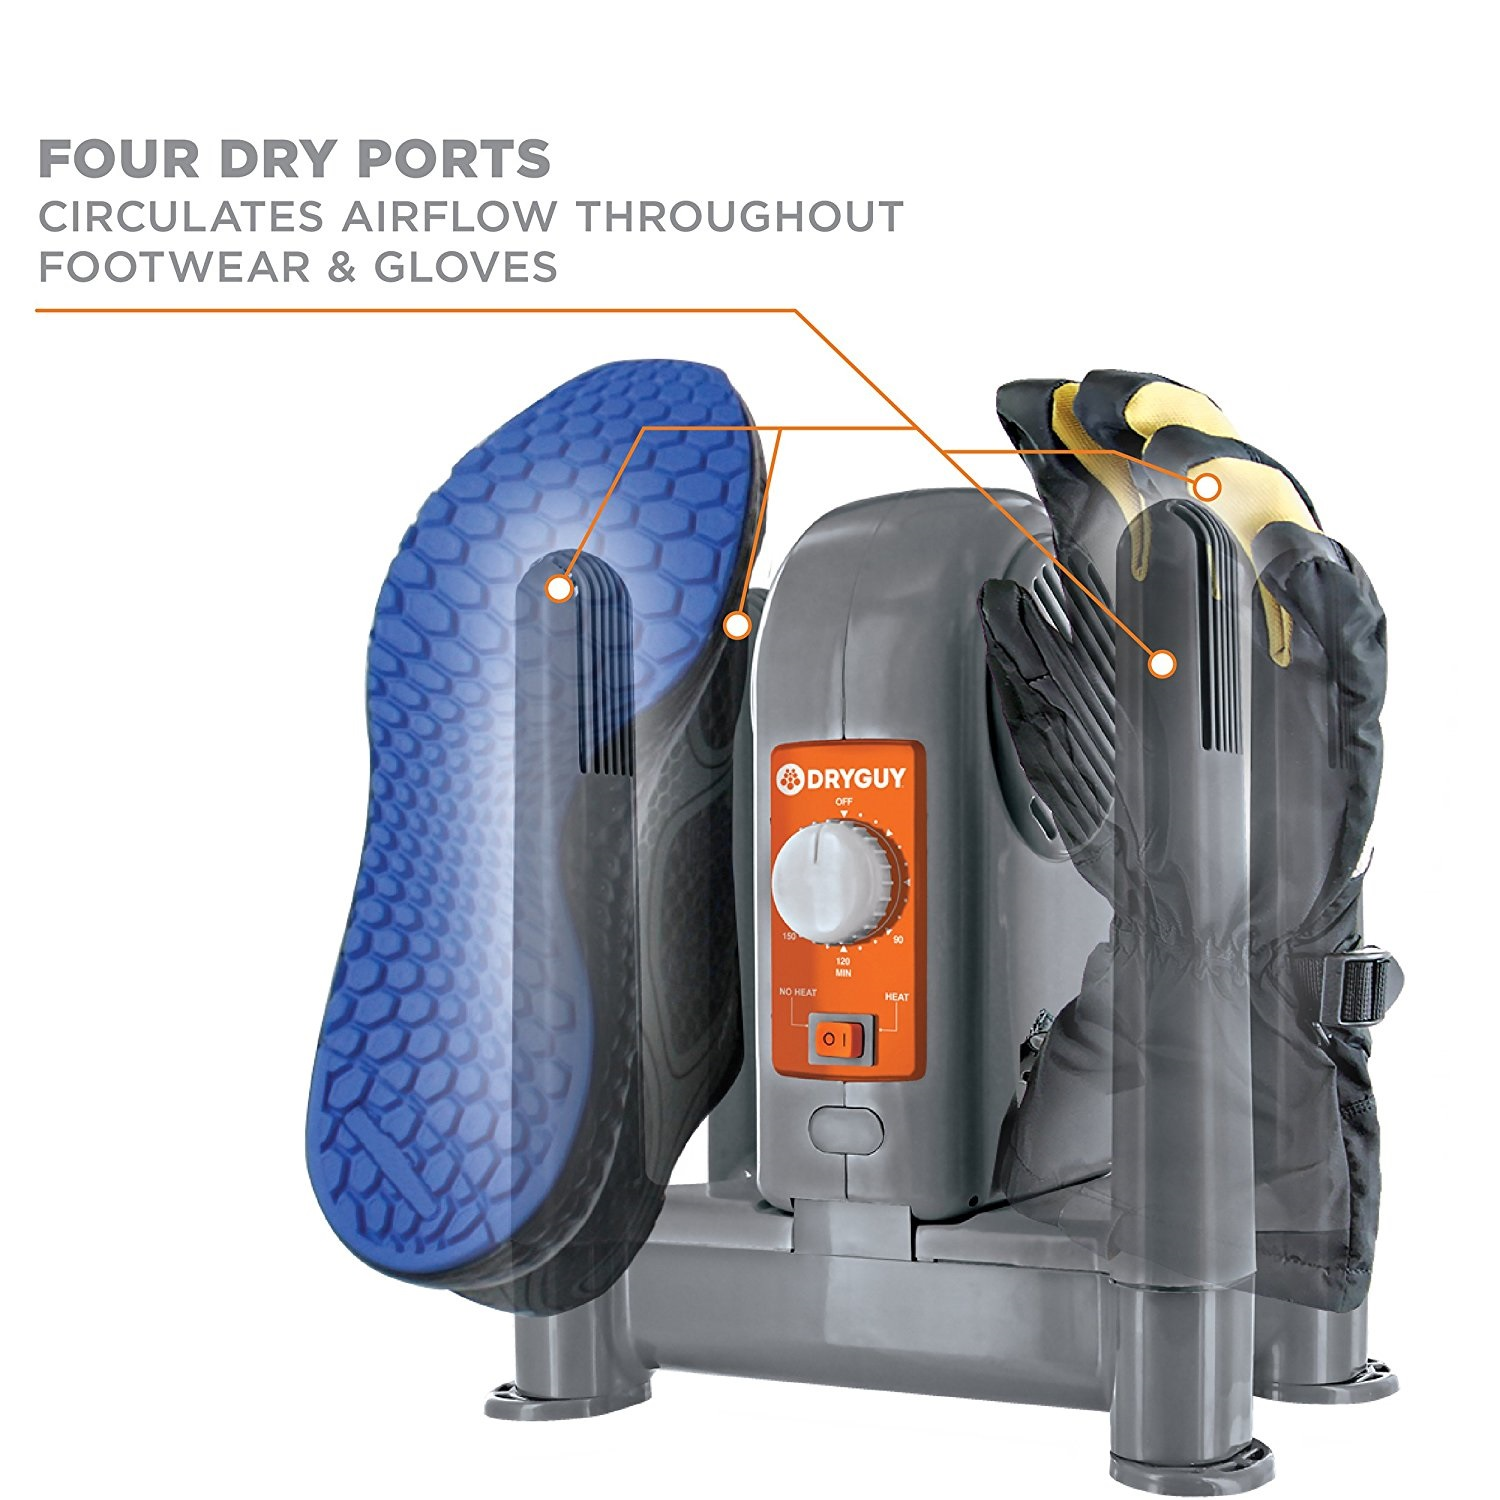 DryGuy Forced Air Electric Boot Dryer